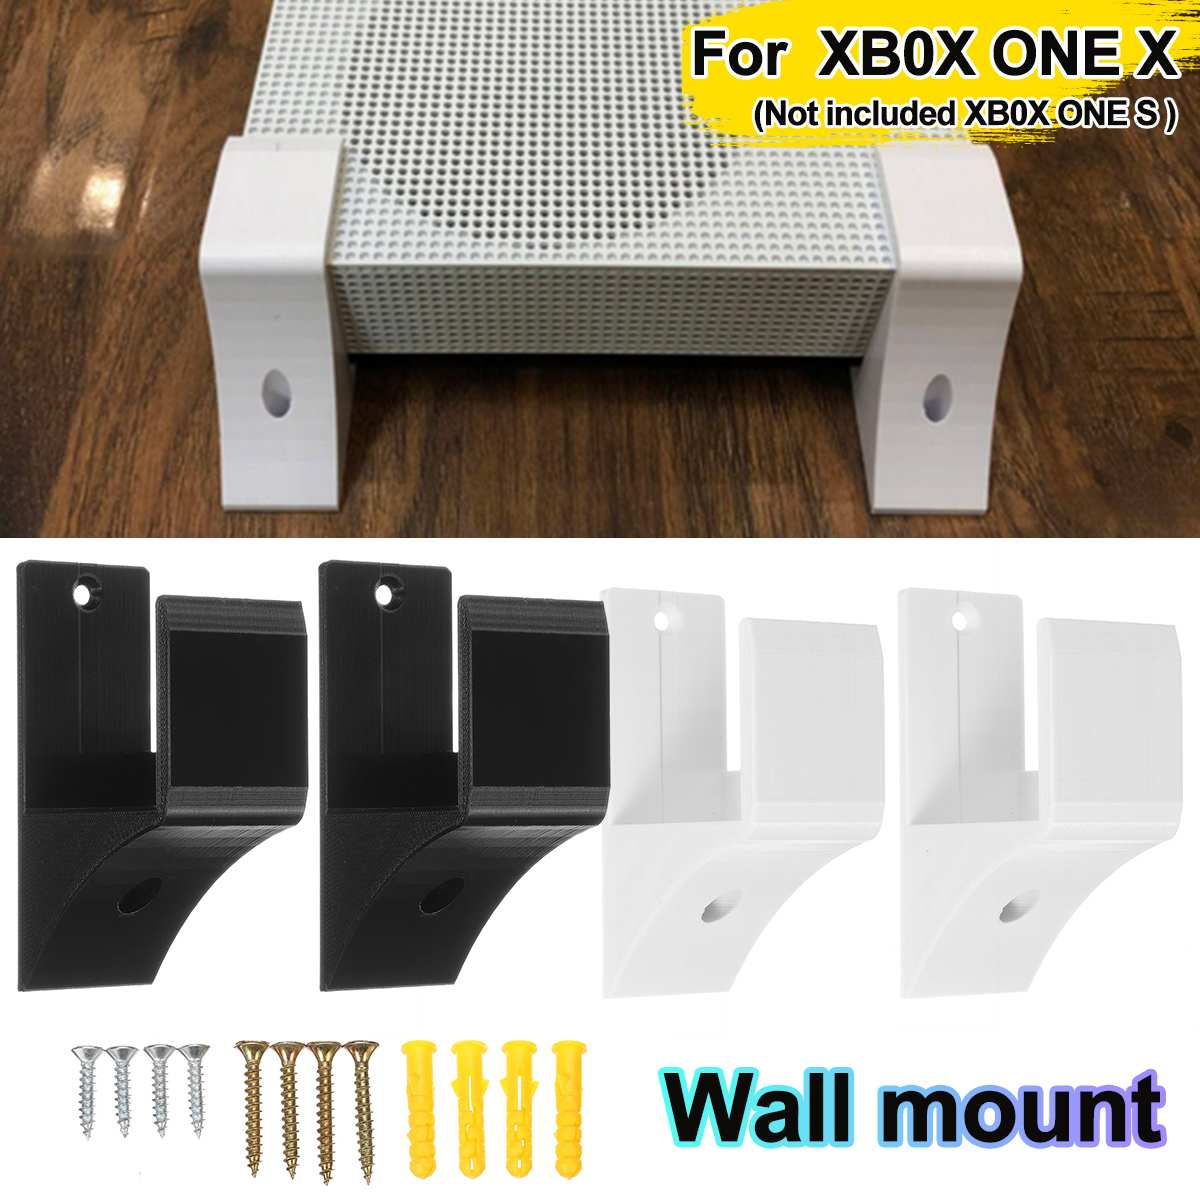 White/Black 3D Printed With Screws Wall Holder For XB0X ONE S Game Pad Dock Gamepad Stand Holder